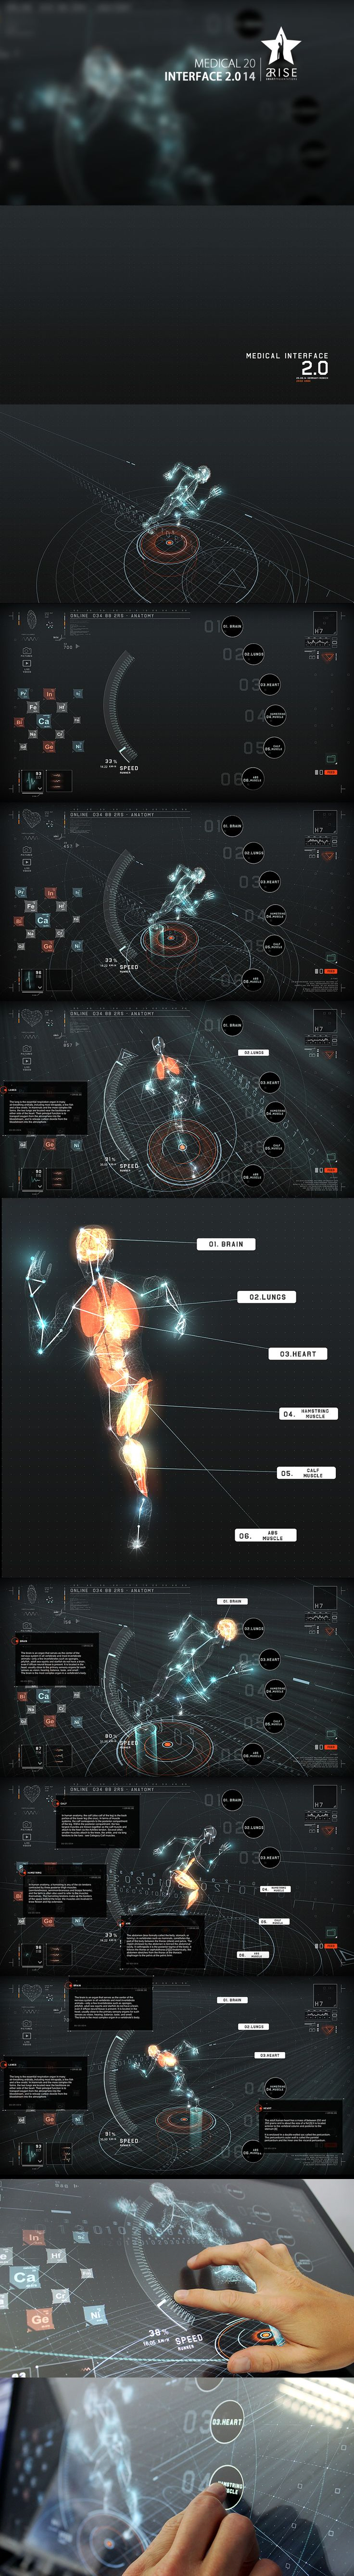 MEDICAL INTERFACE 2.0 by Jedi88.deviantart.com on @deviantART